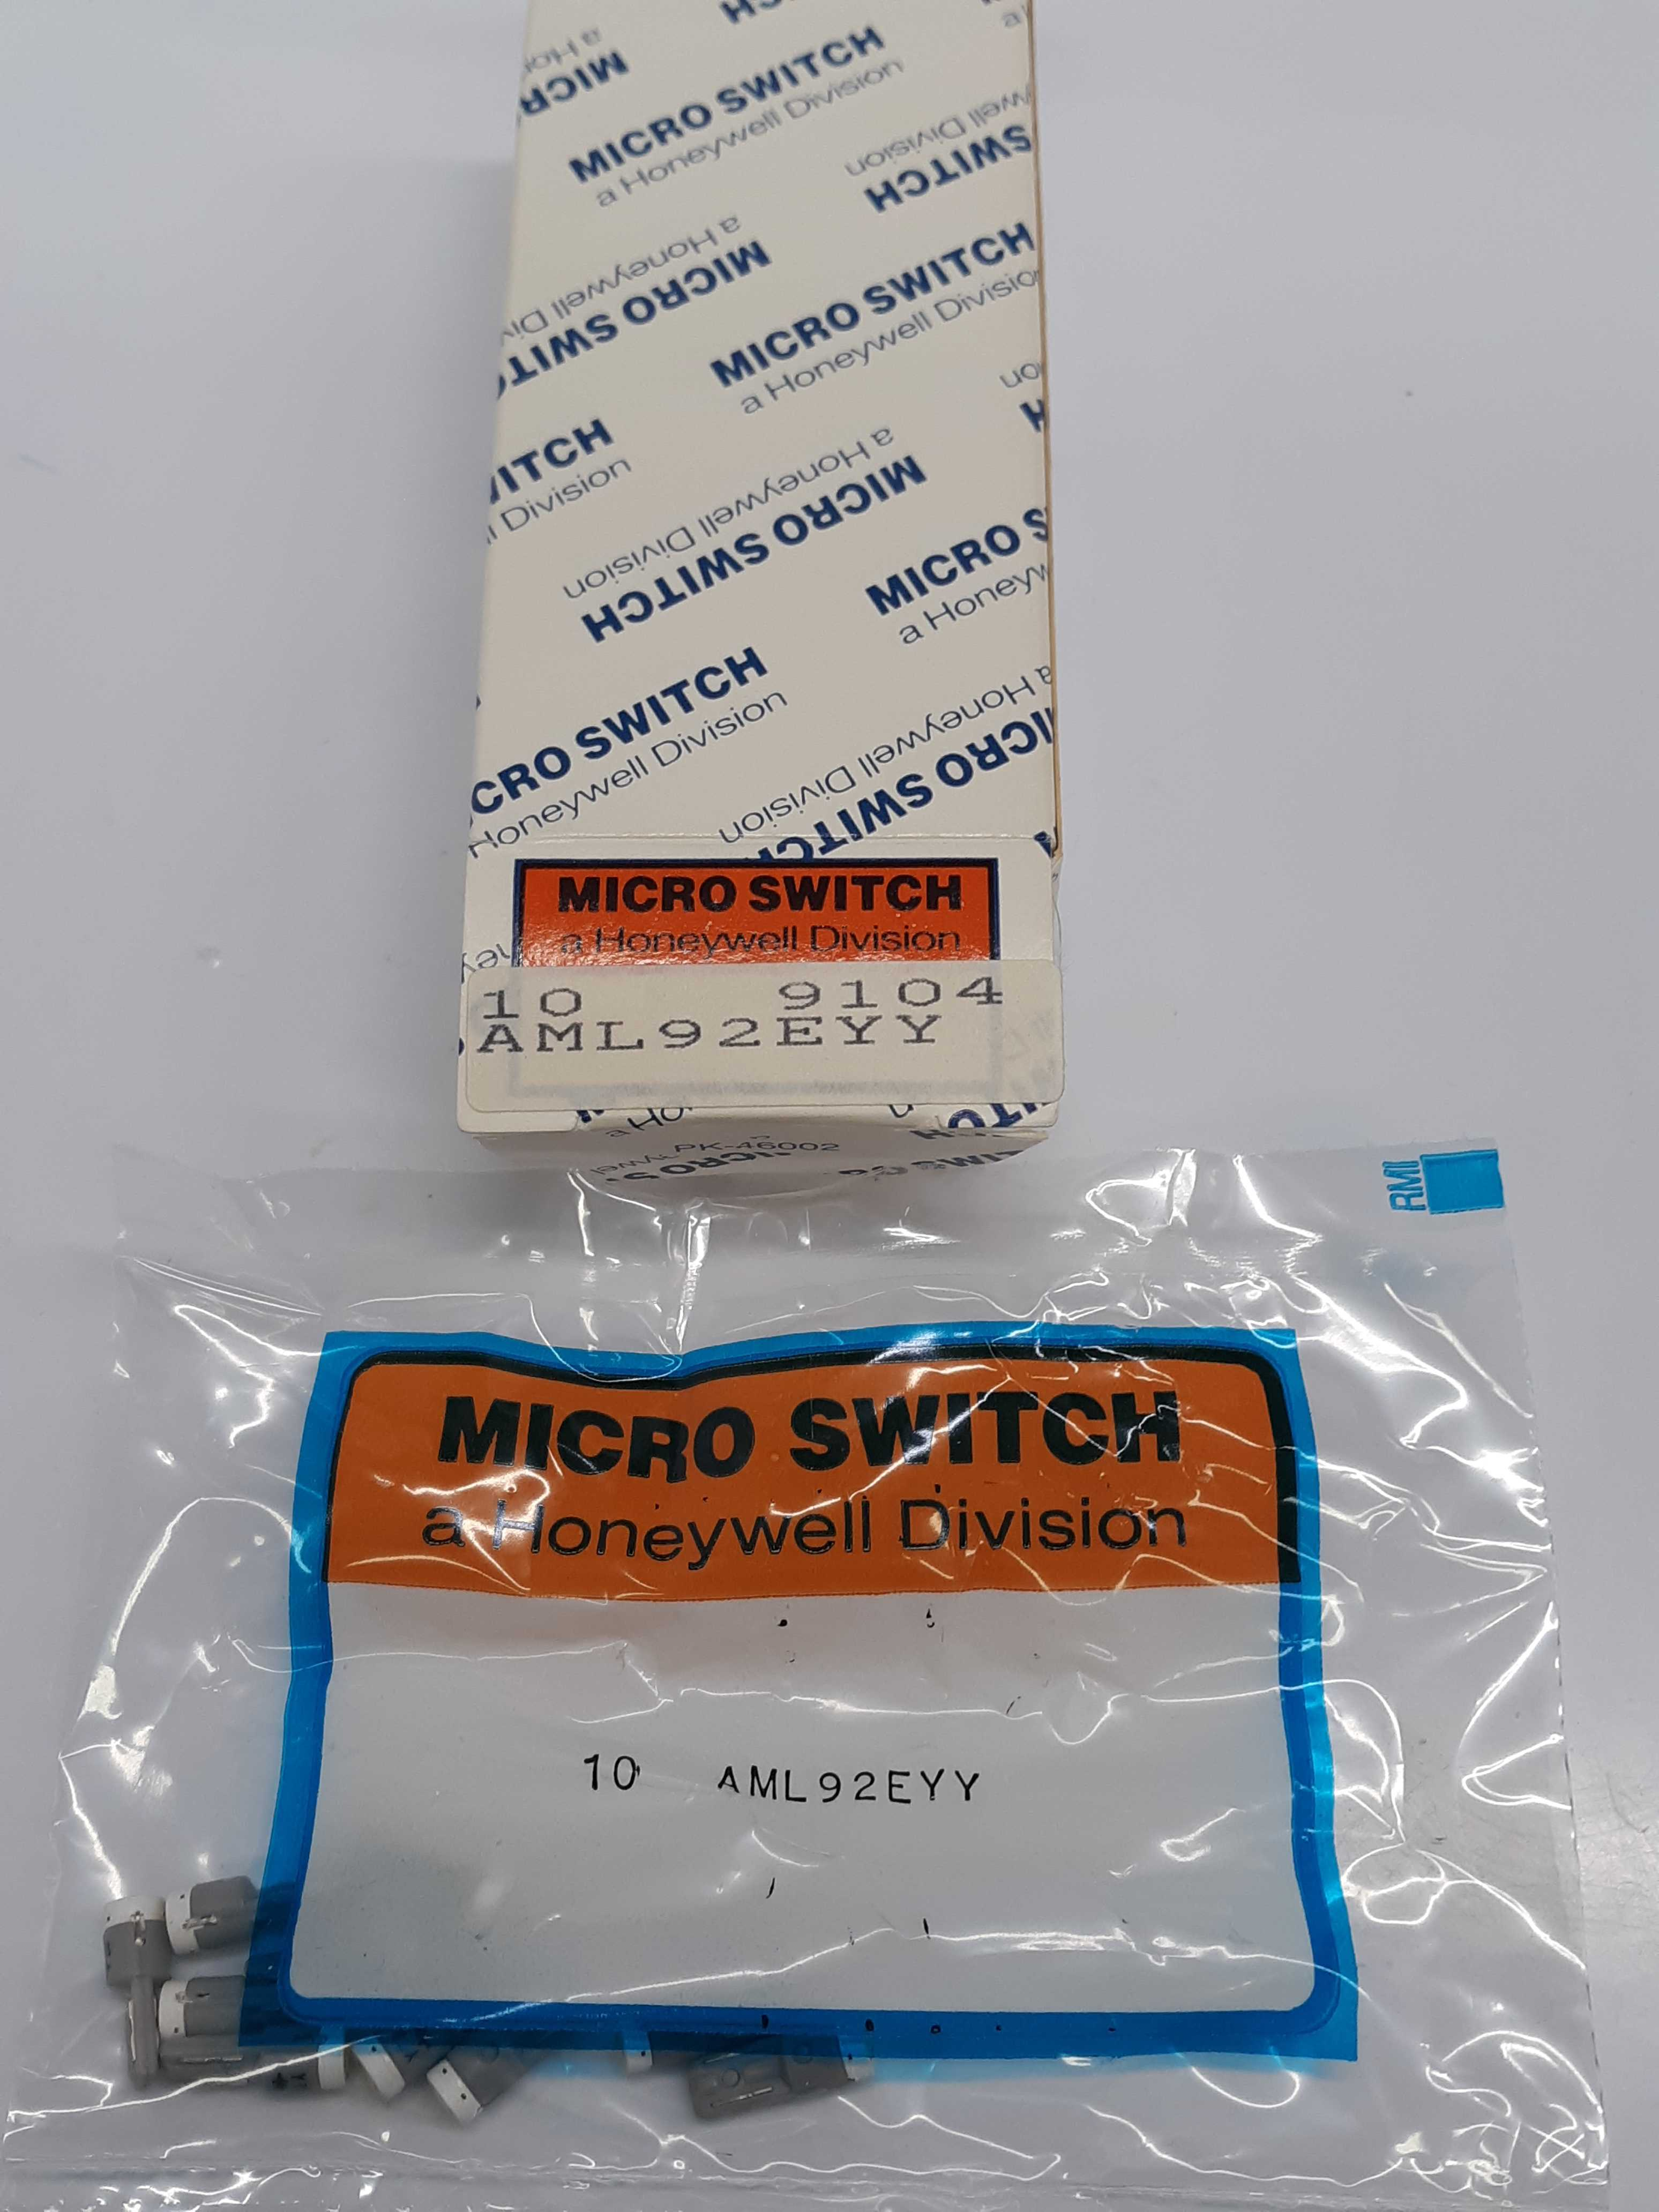 Micro Switch Honeywell 10 Light Emitting Diode Connectors AML92EYY